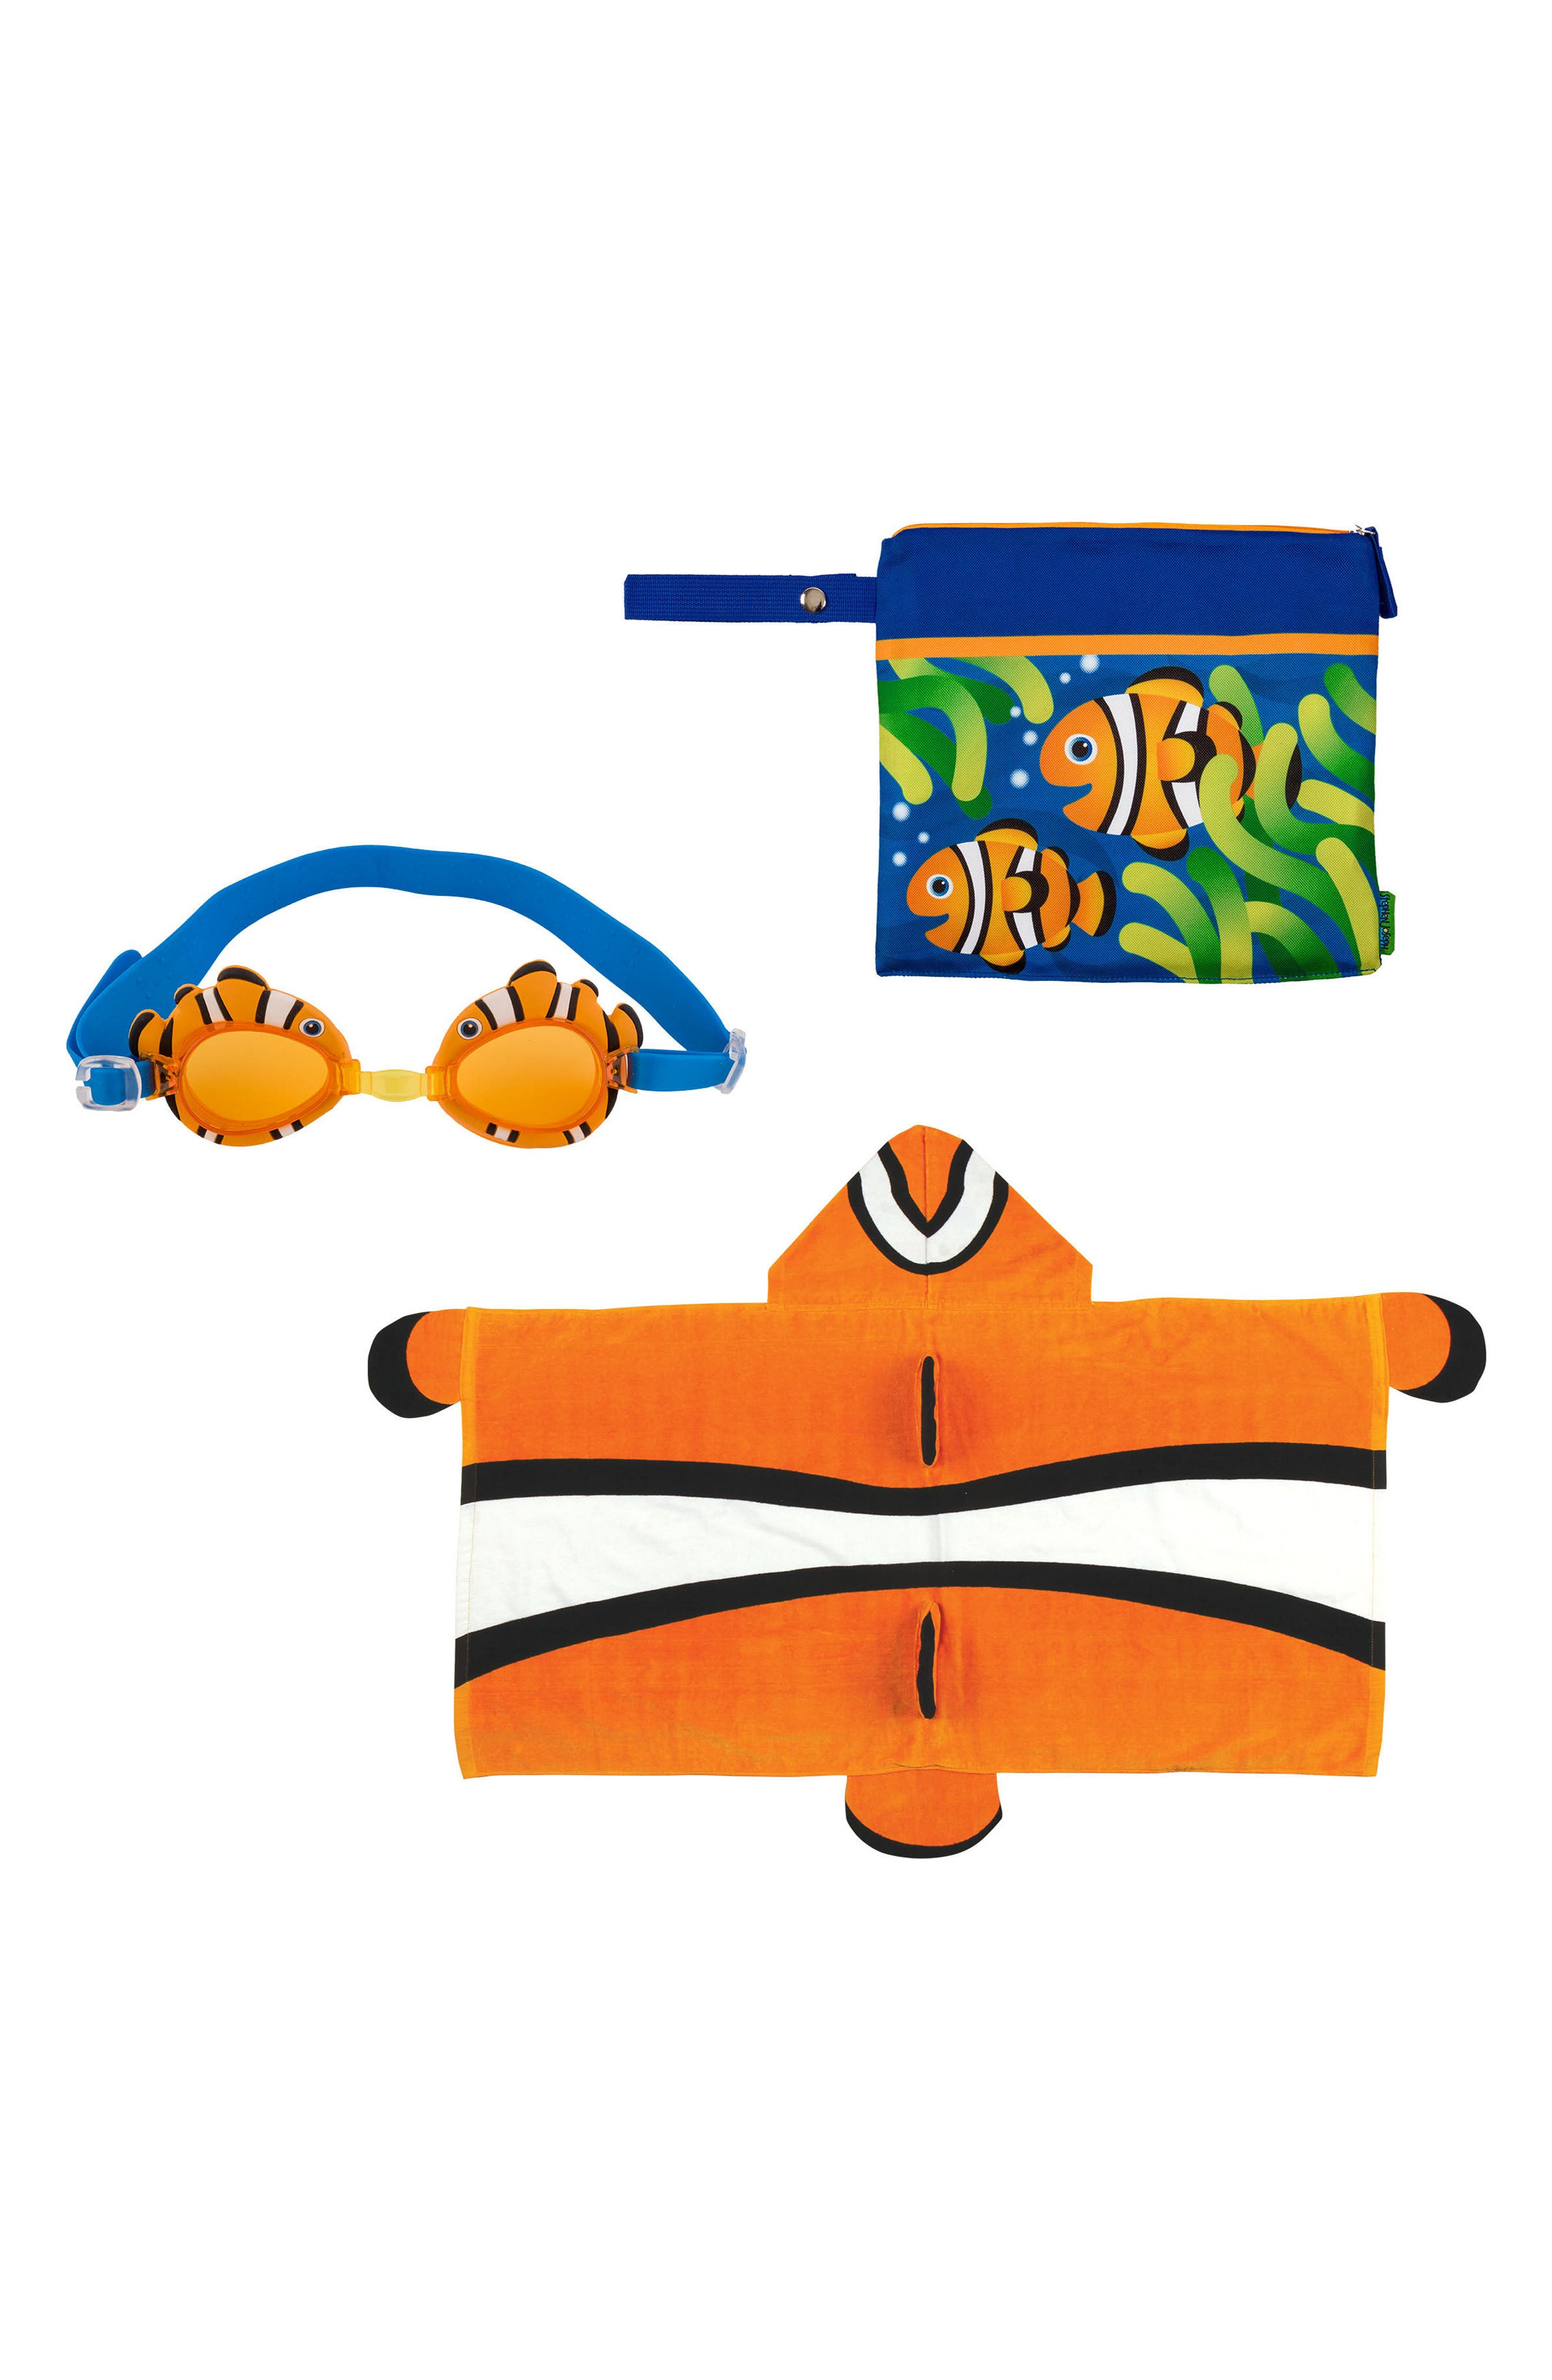 Stephen Joseph Wetdry Bag Hooded Towel  Goggles Size One Size  Orange